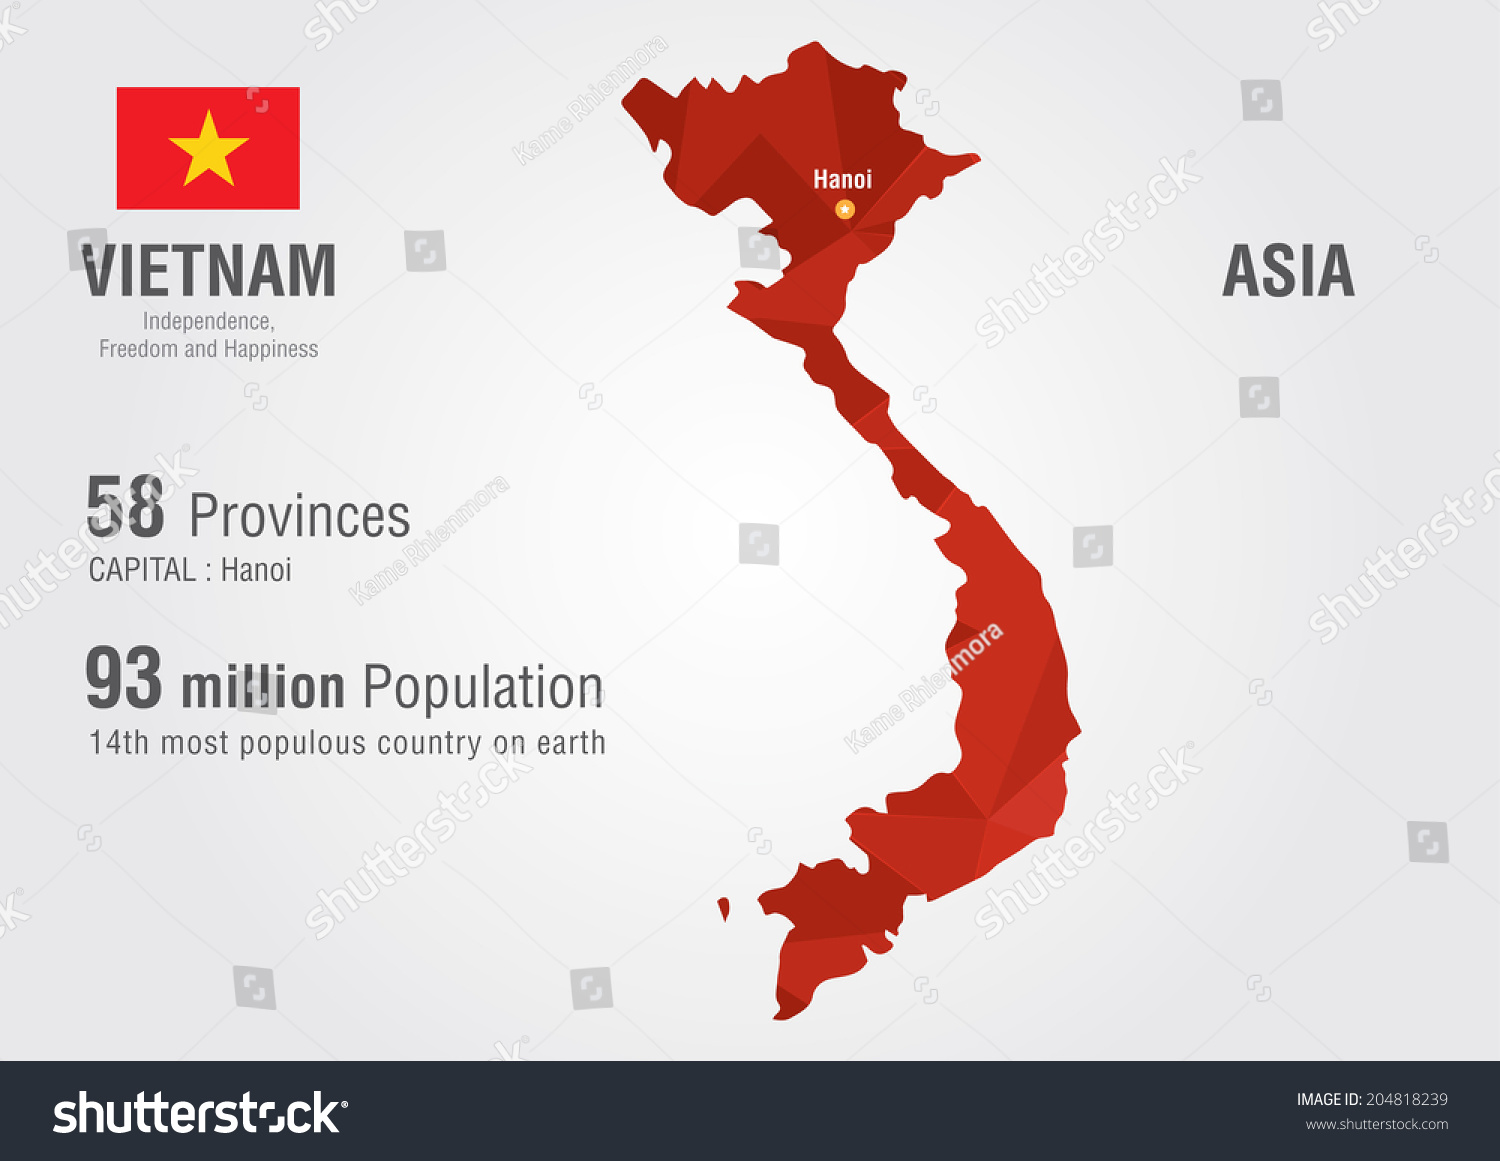 Vietnam world map pixel diamond texture stock vector 204818239 vietnam world map with a pixel diamond texture world geography gumiabroncs Gallery